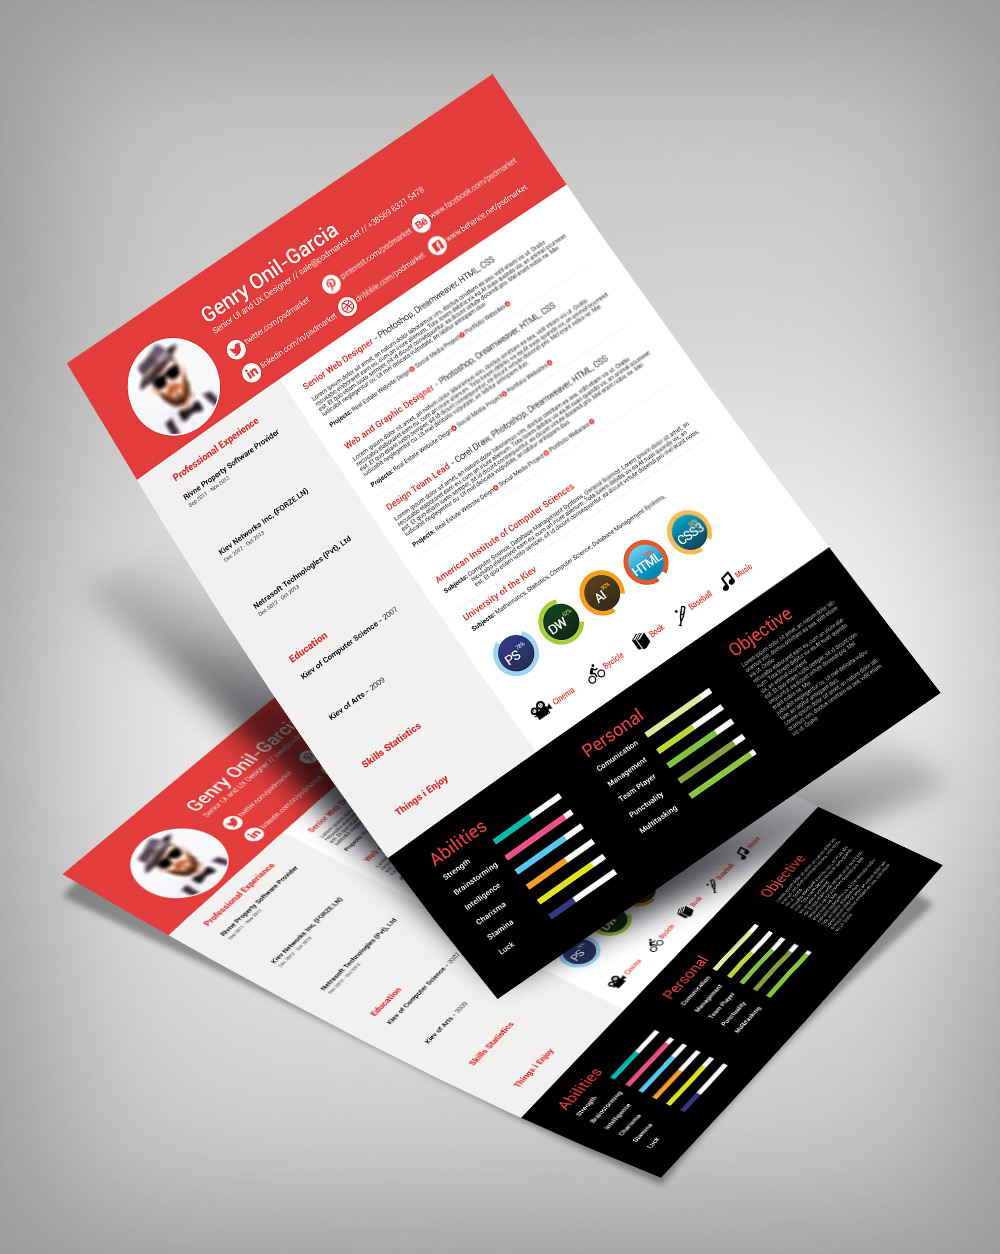 Free Simple Resume Design Template For UI & UX Desingers-Good Resume For Good Job (2)